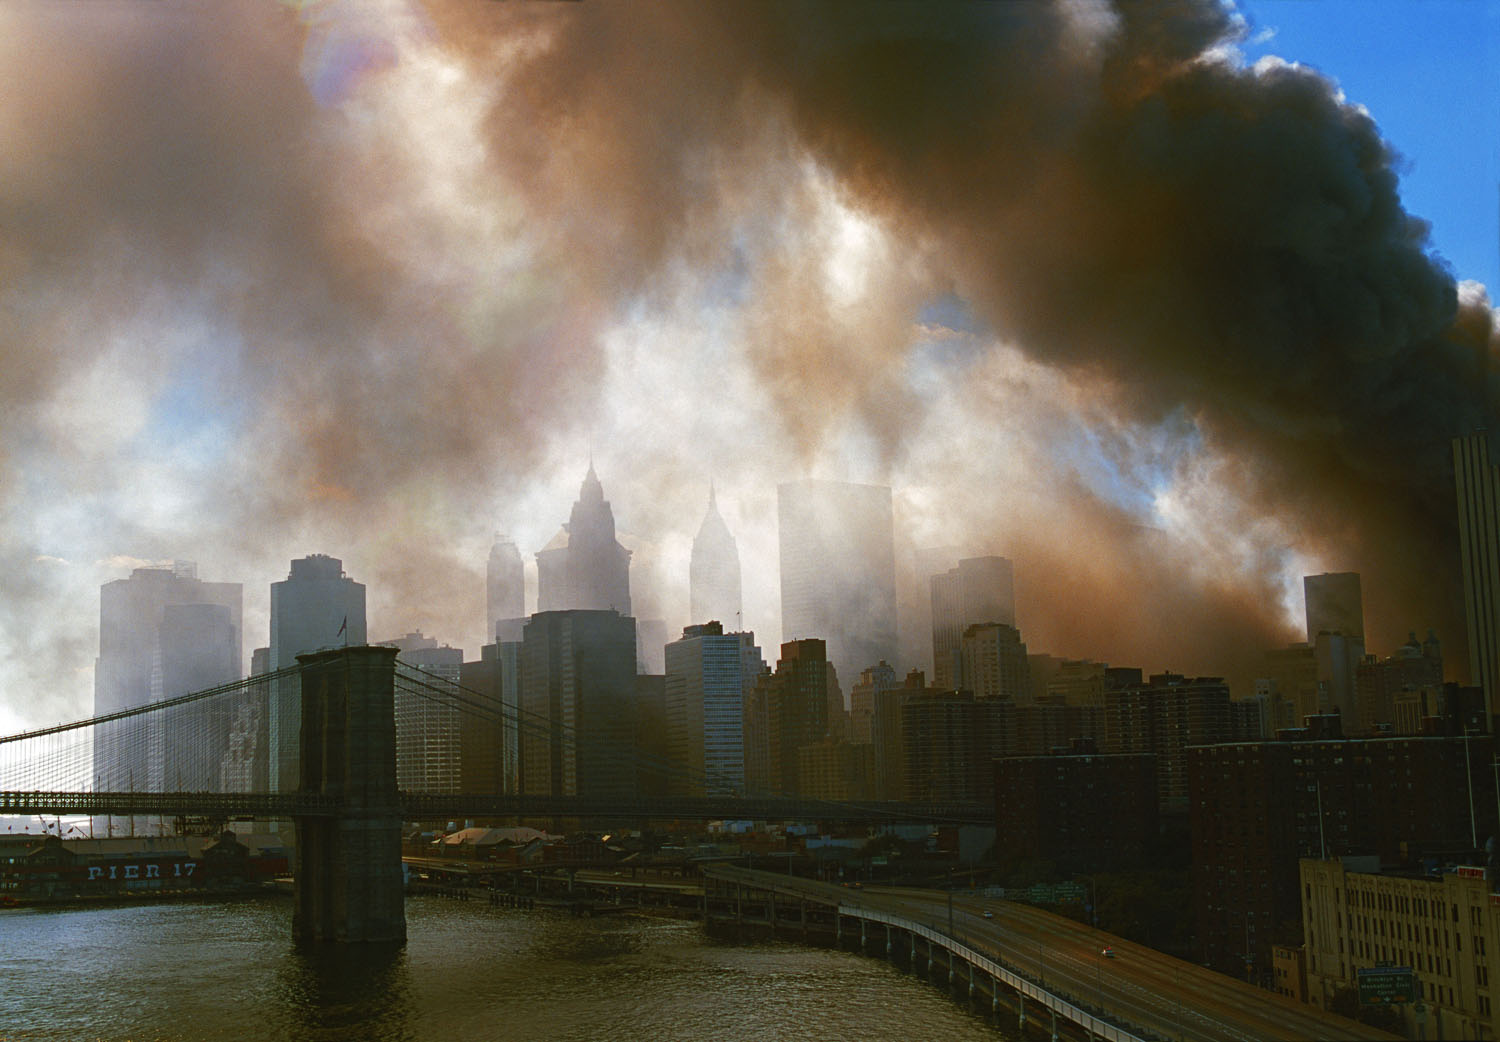 New York, NY, September 11, 2001. View from the Manhattan bridge towards the Brooklyn Bridge and downtown Manhattan during the aftermath of World Trade Center attacks.